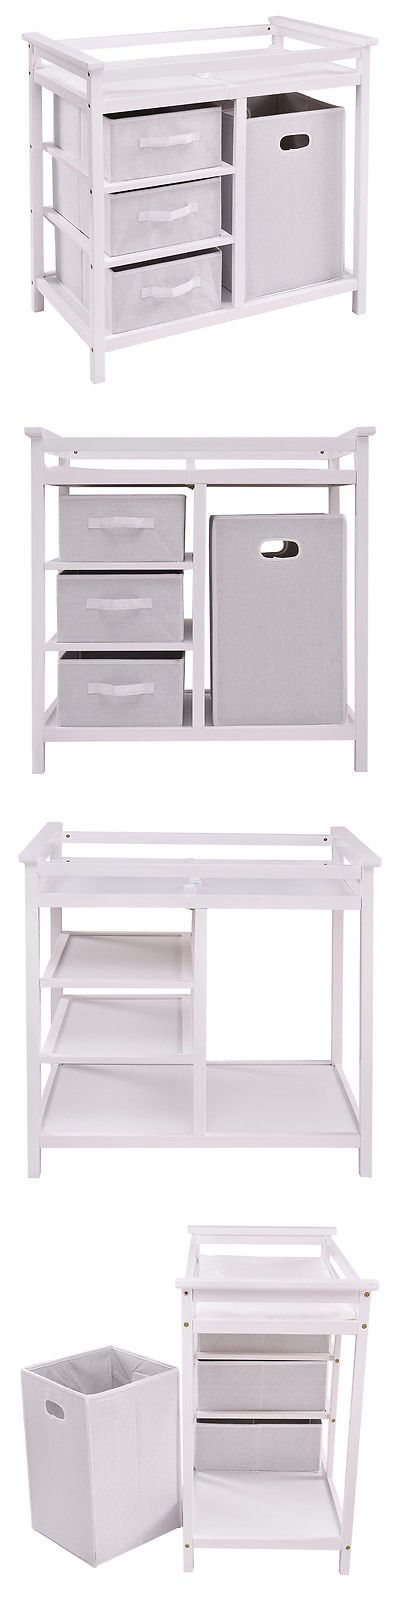 Changing Tables 20424: White Infant Baby Changing Table 3 Basket Hamper Diaper Daycare Storage Nursery -> BUY IT NOW ONLY: $95.99 on eBay!